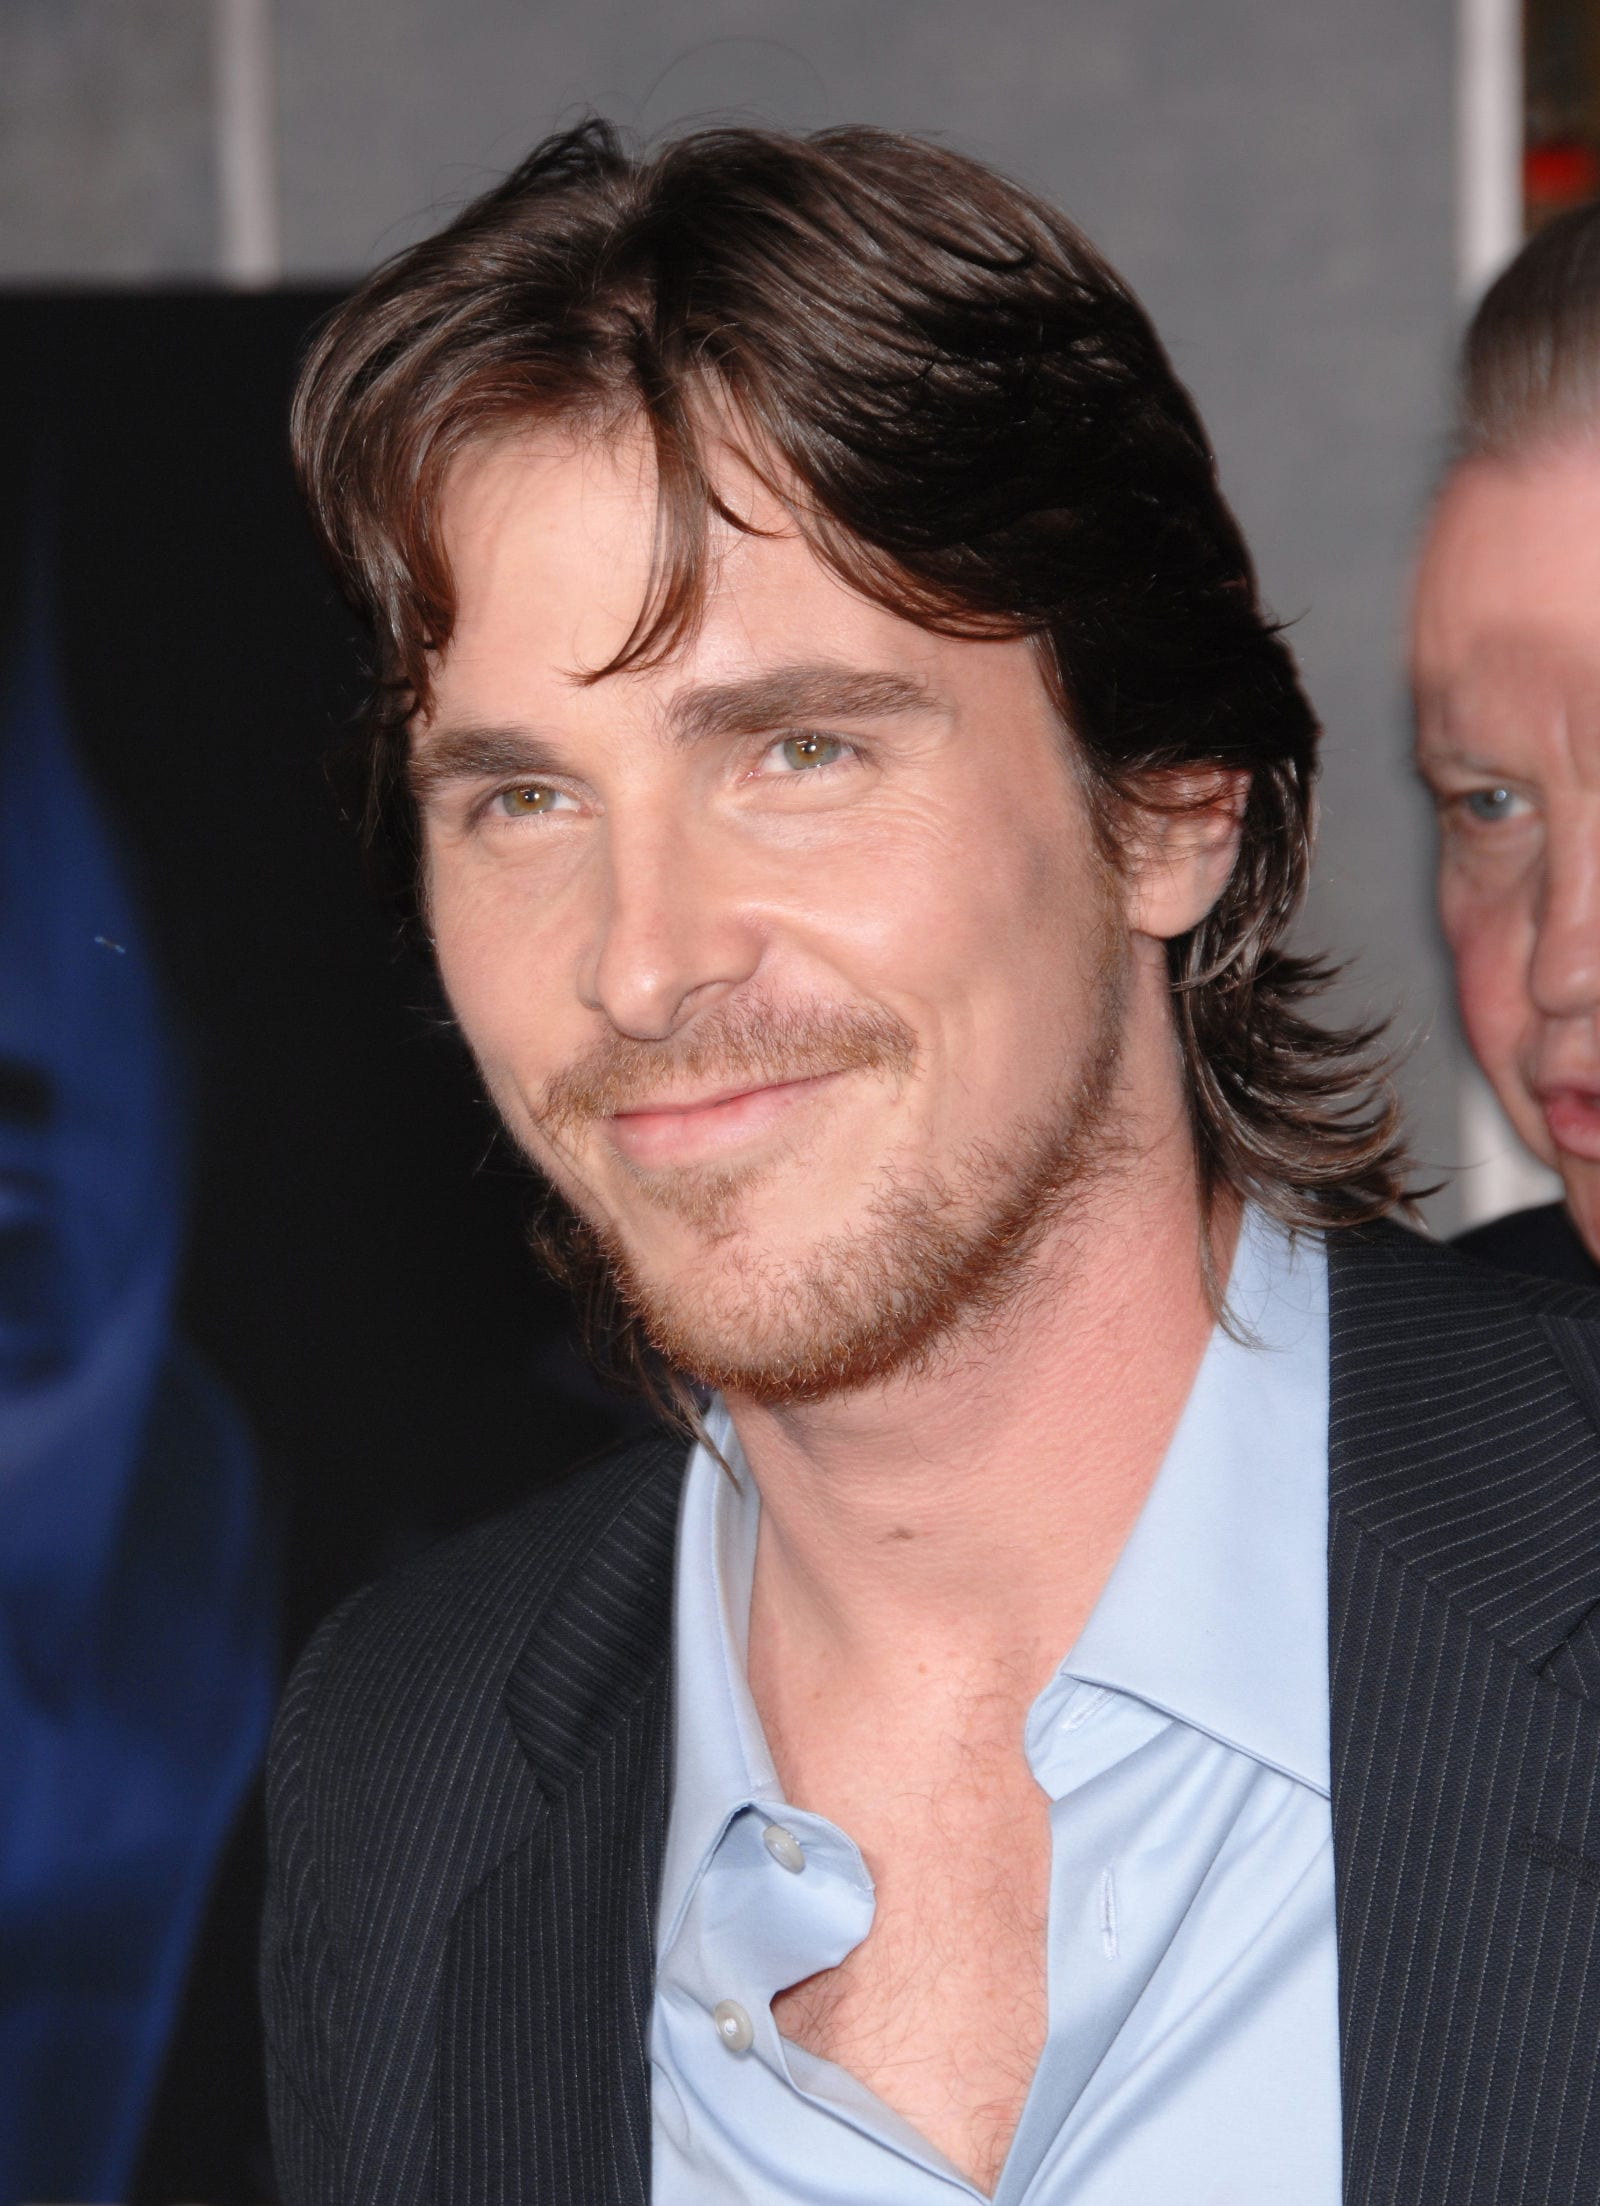 CHRISTIAN BALE modern mullet curtained hairstyle